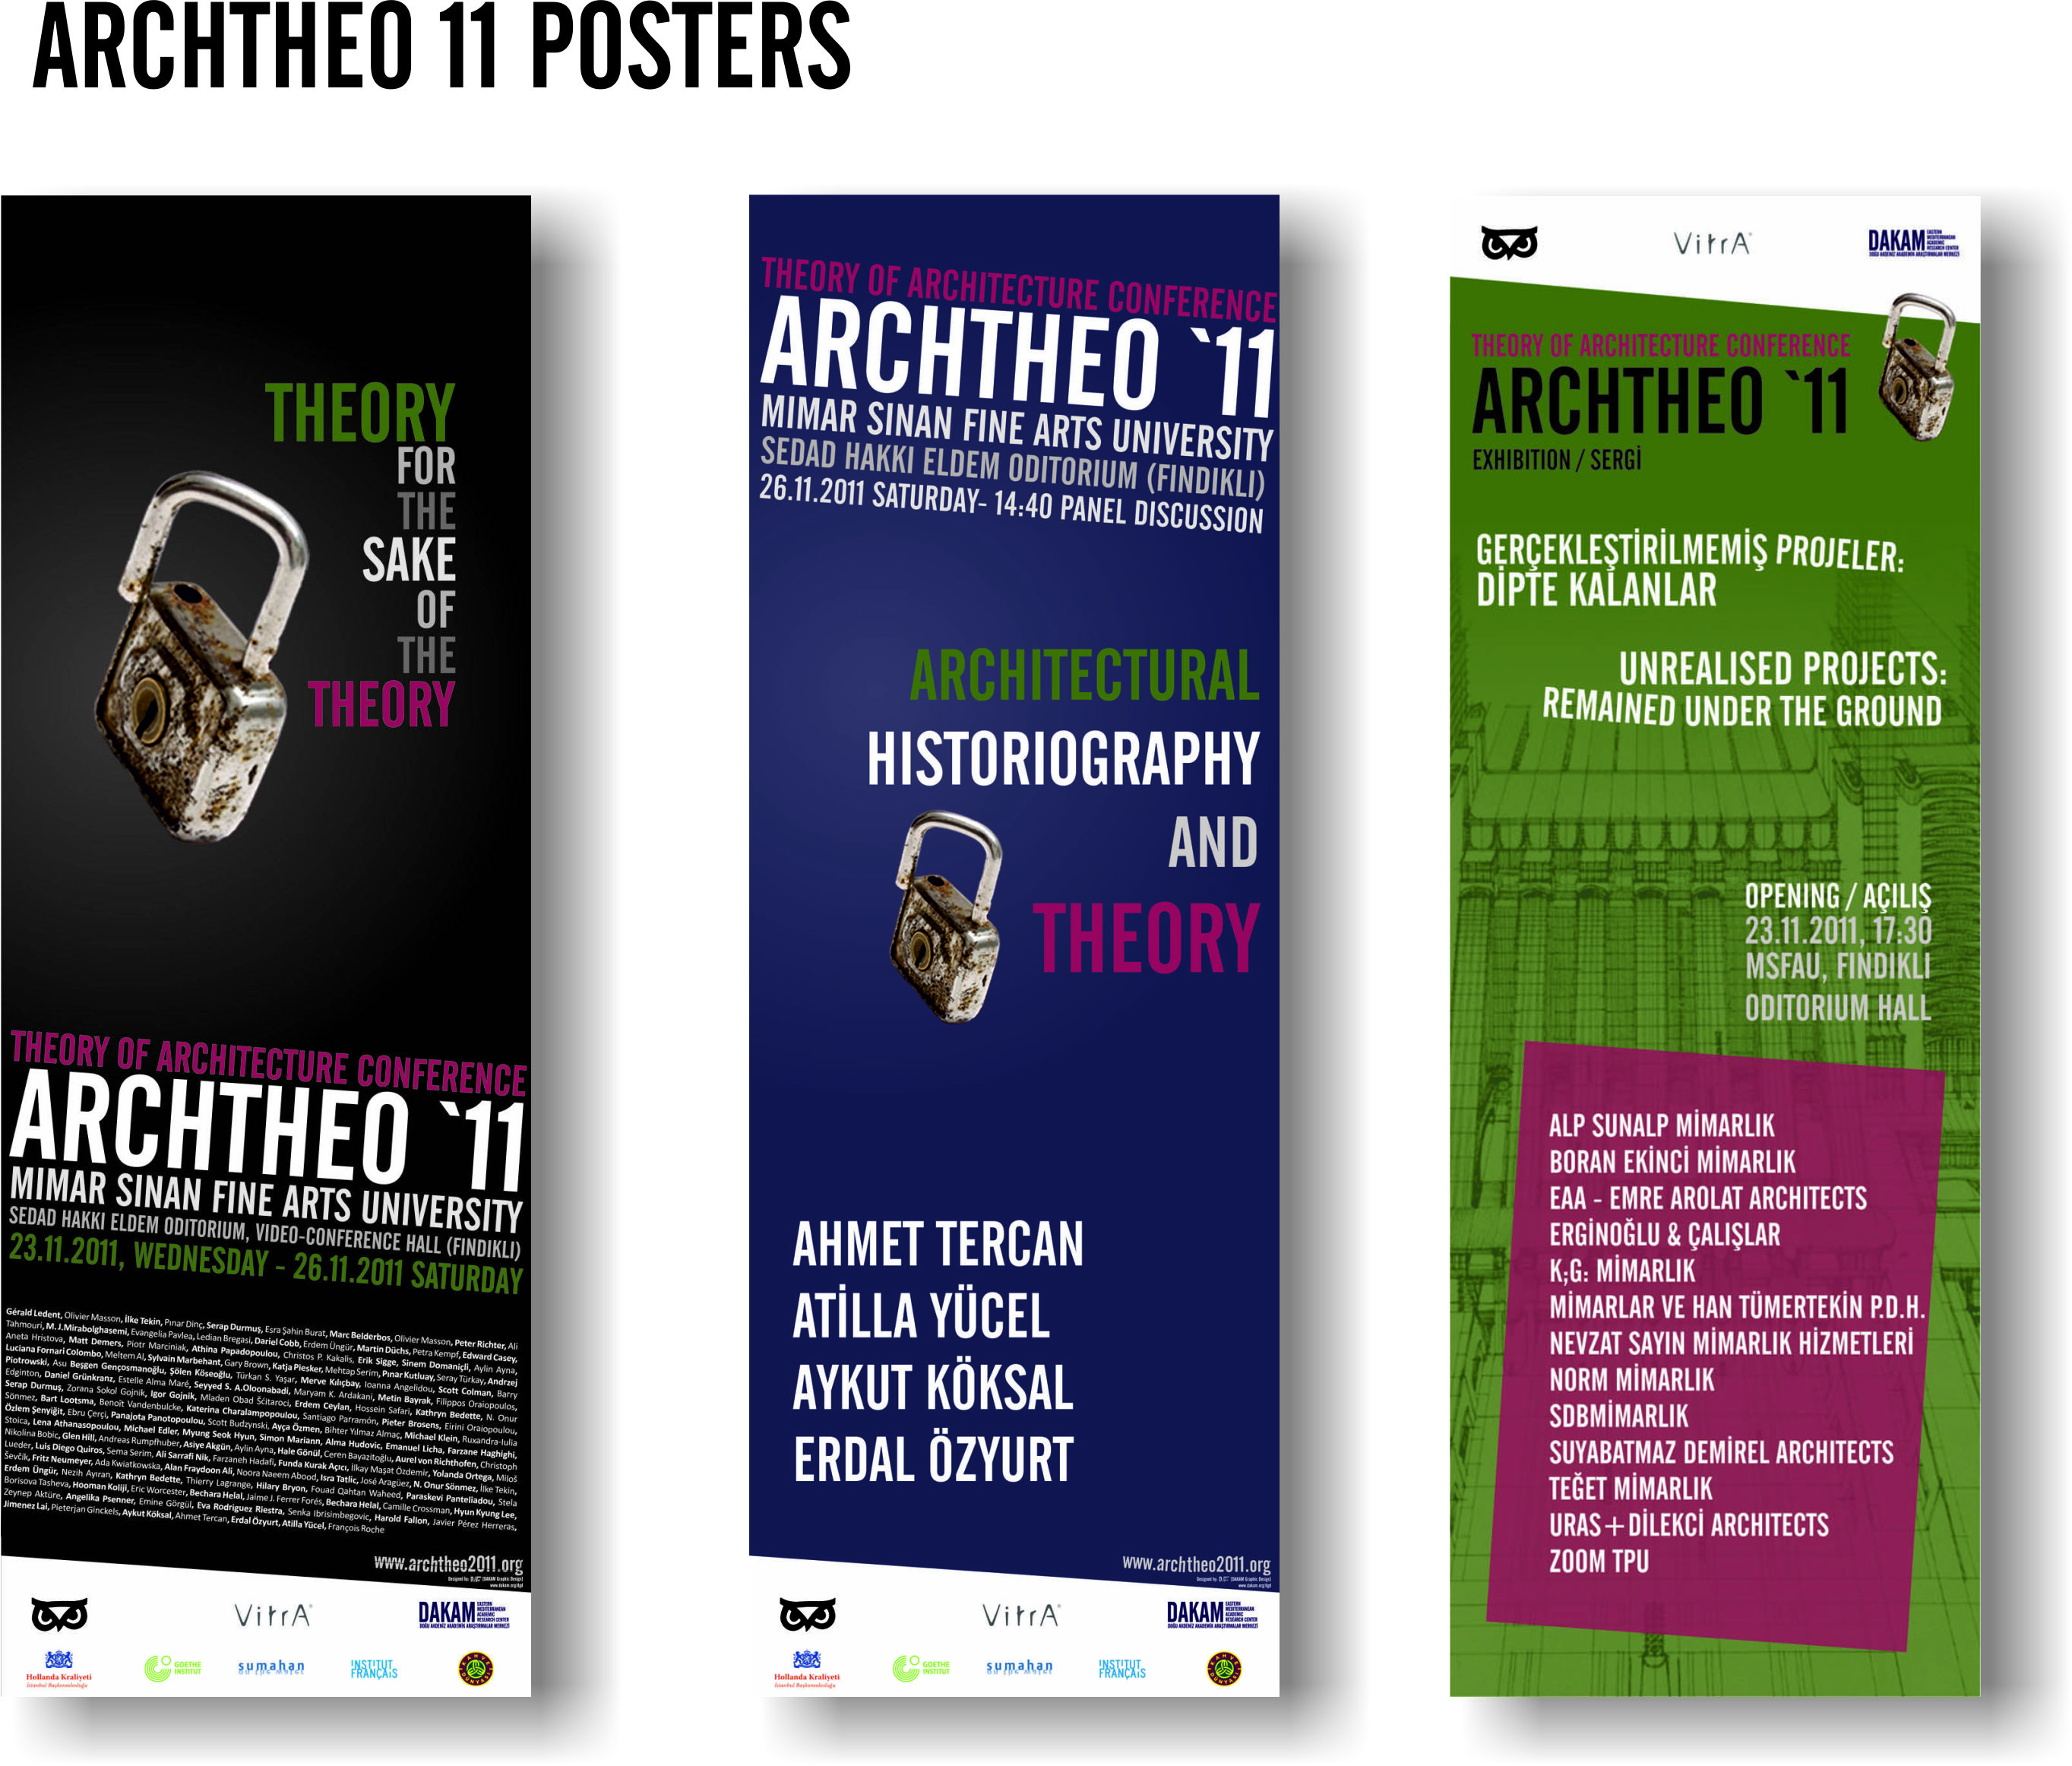 ARCHTHEO 11 POSTERS